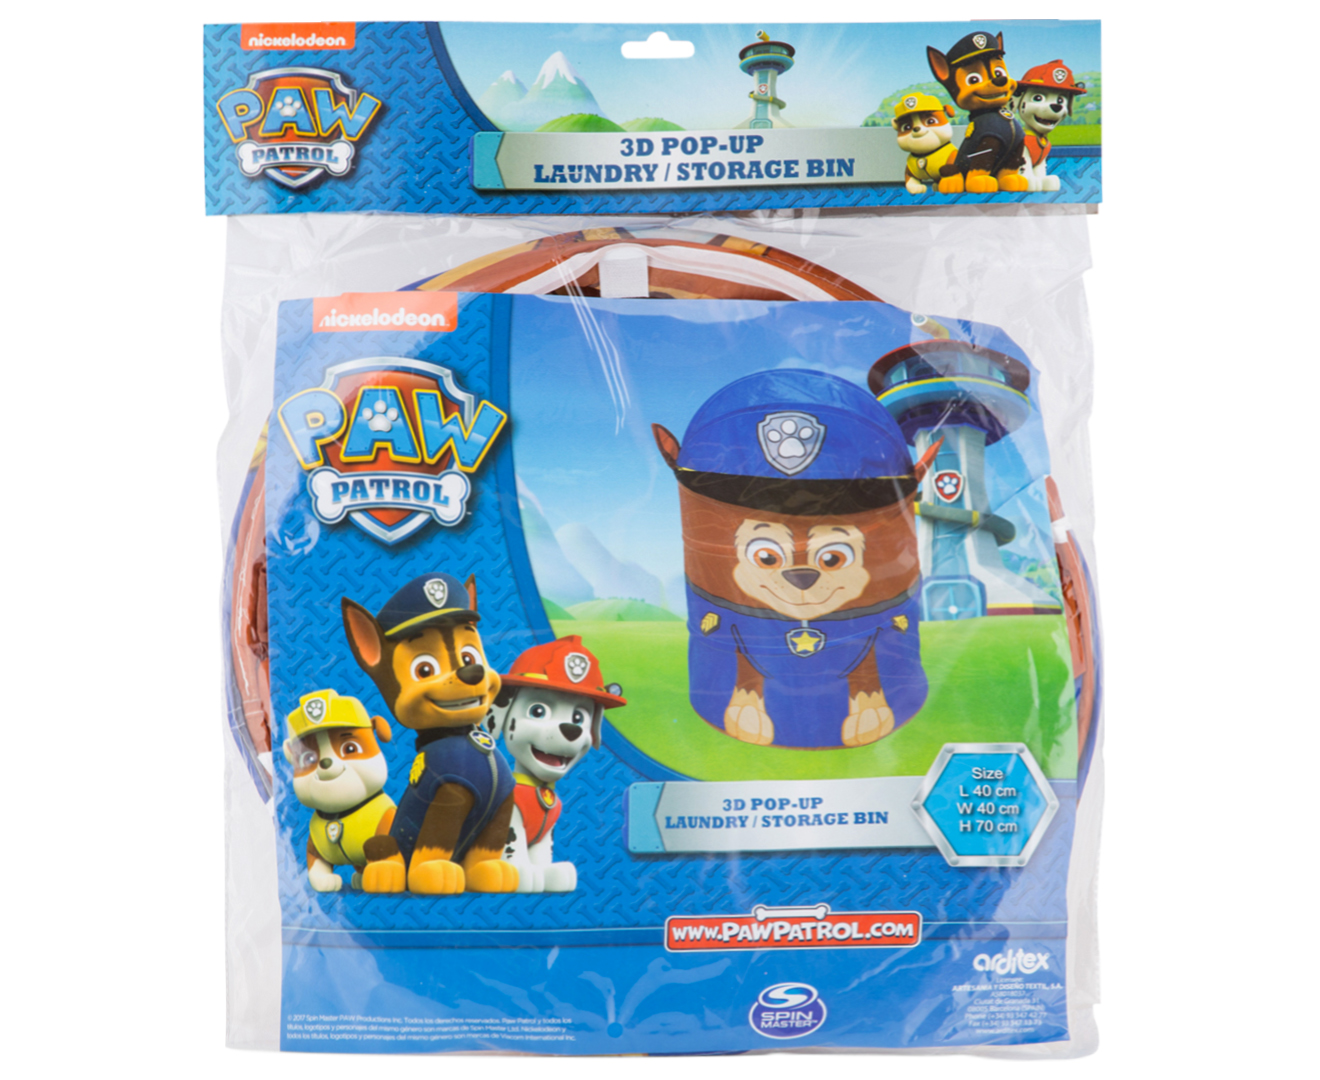 Paw Patrol Toy Organizer Bin Cubby Kids Child Storage Box: Paw Patrol 3D Chase Pop-Up Laundry/Storage Bin